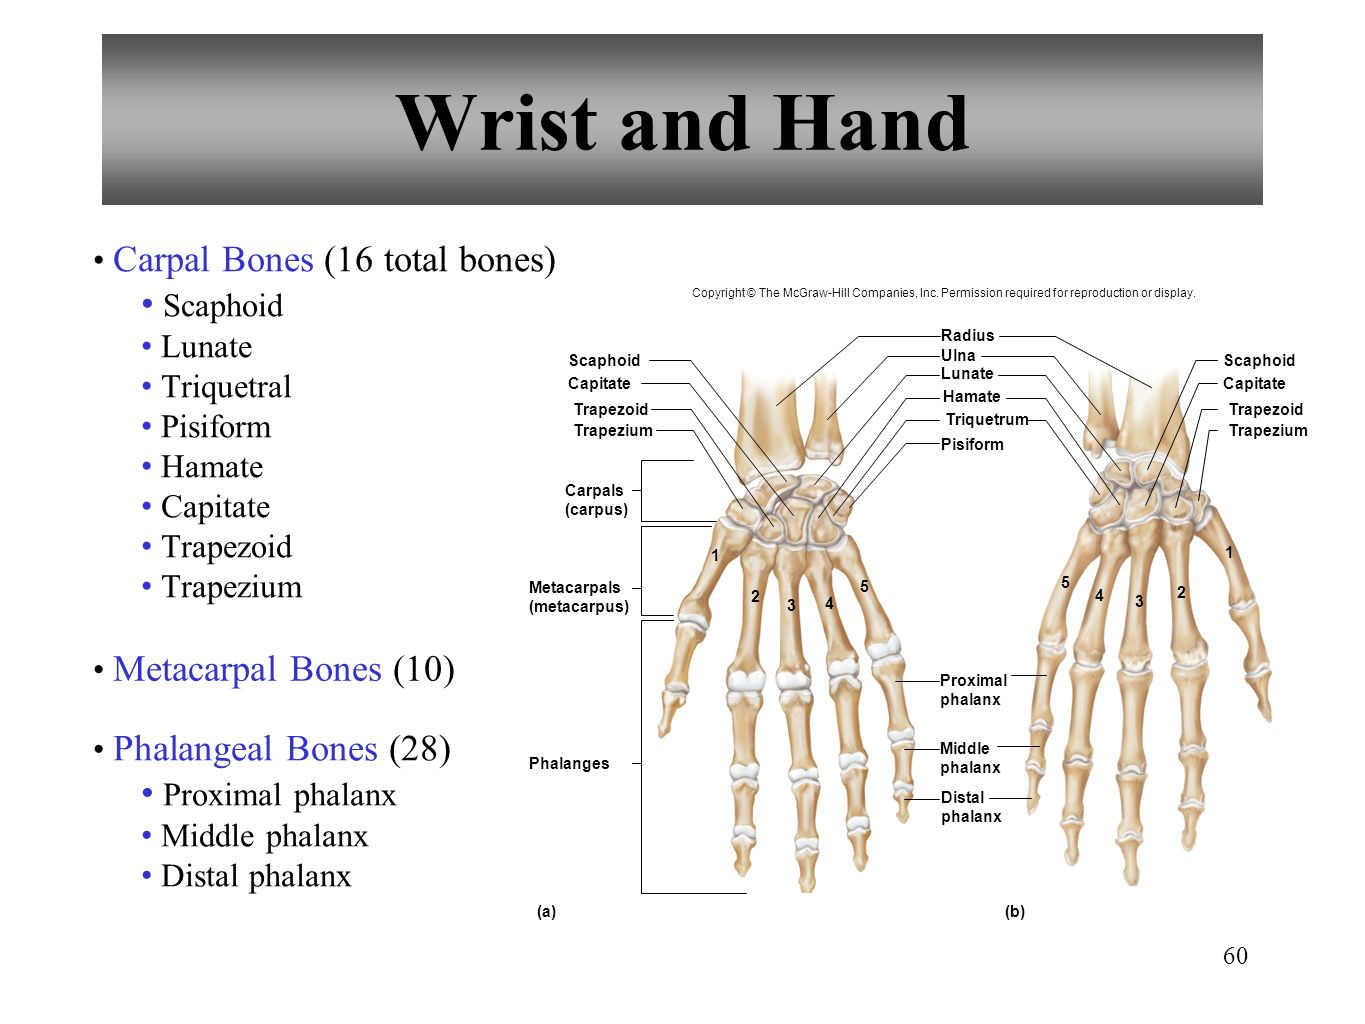 Carpus bones pinterest coloring muscle and hand anatomy - Anatomy And Physiology Ppt Download Wrist And Hand Scaphoid Proximal Phalanx Carpal Bones 16 Total Bones